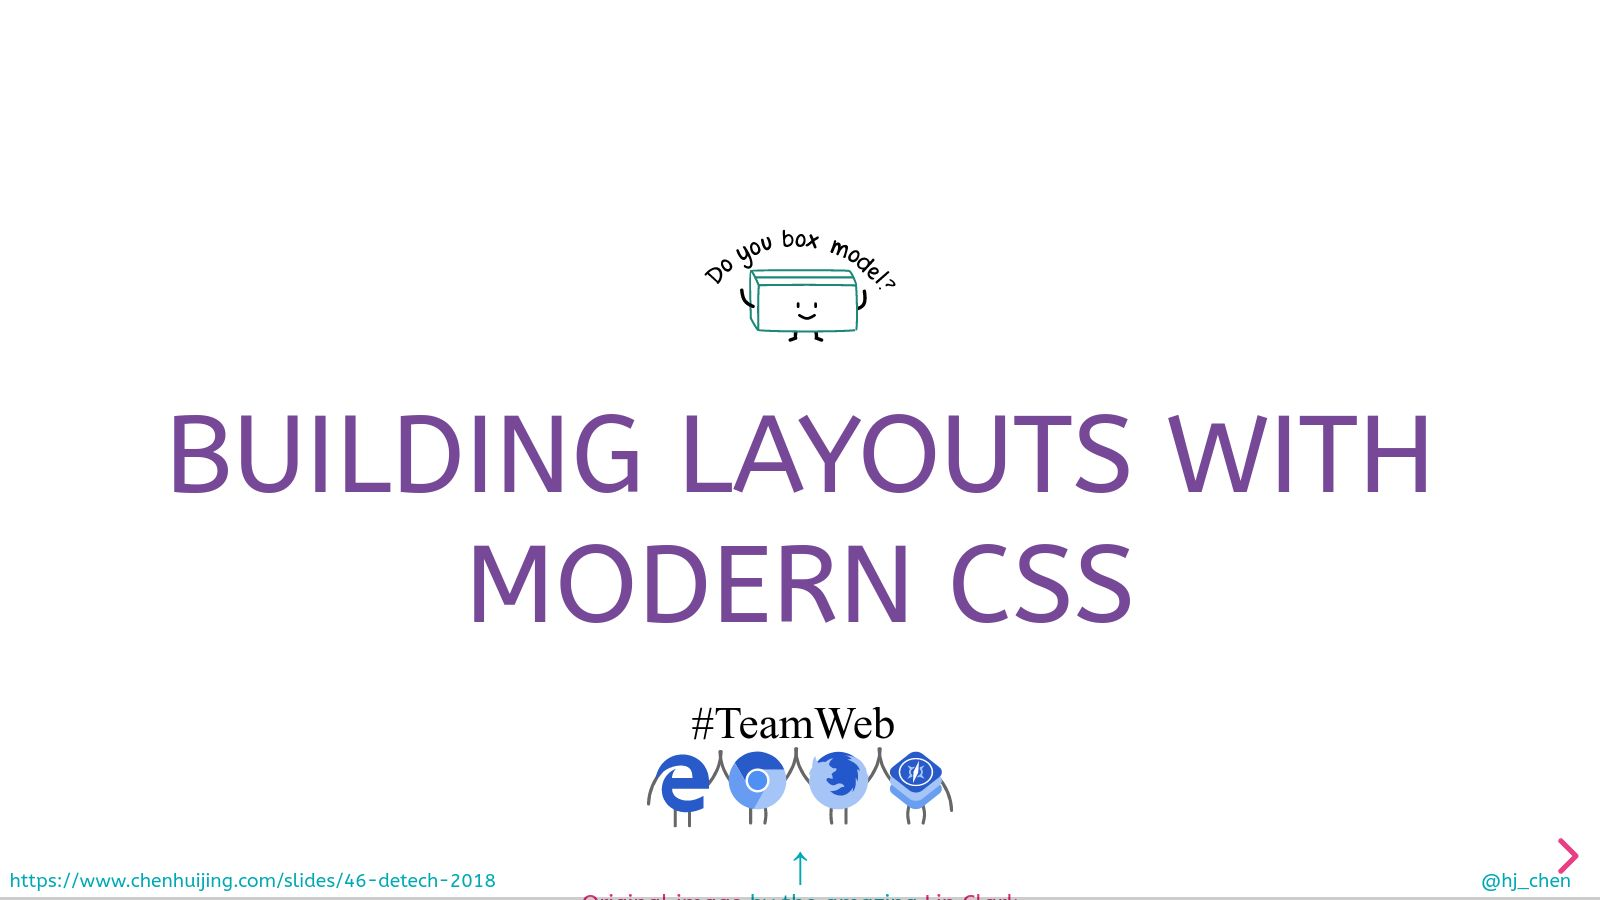 Building layouts with modern CSS